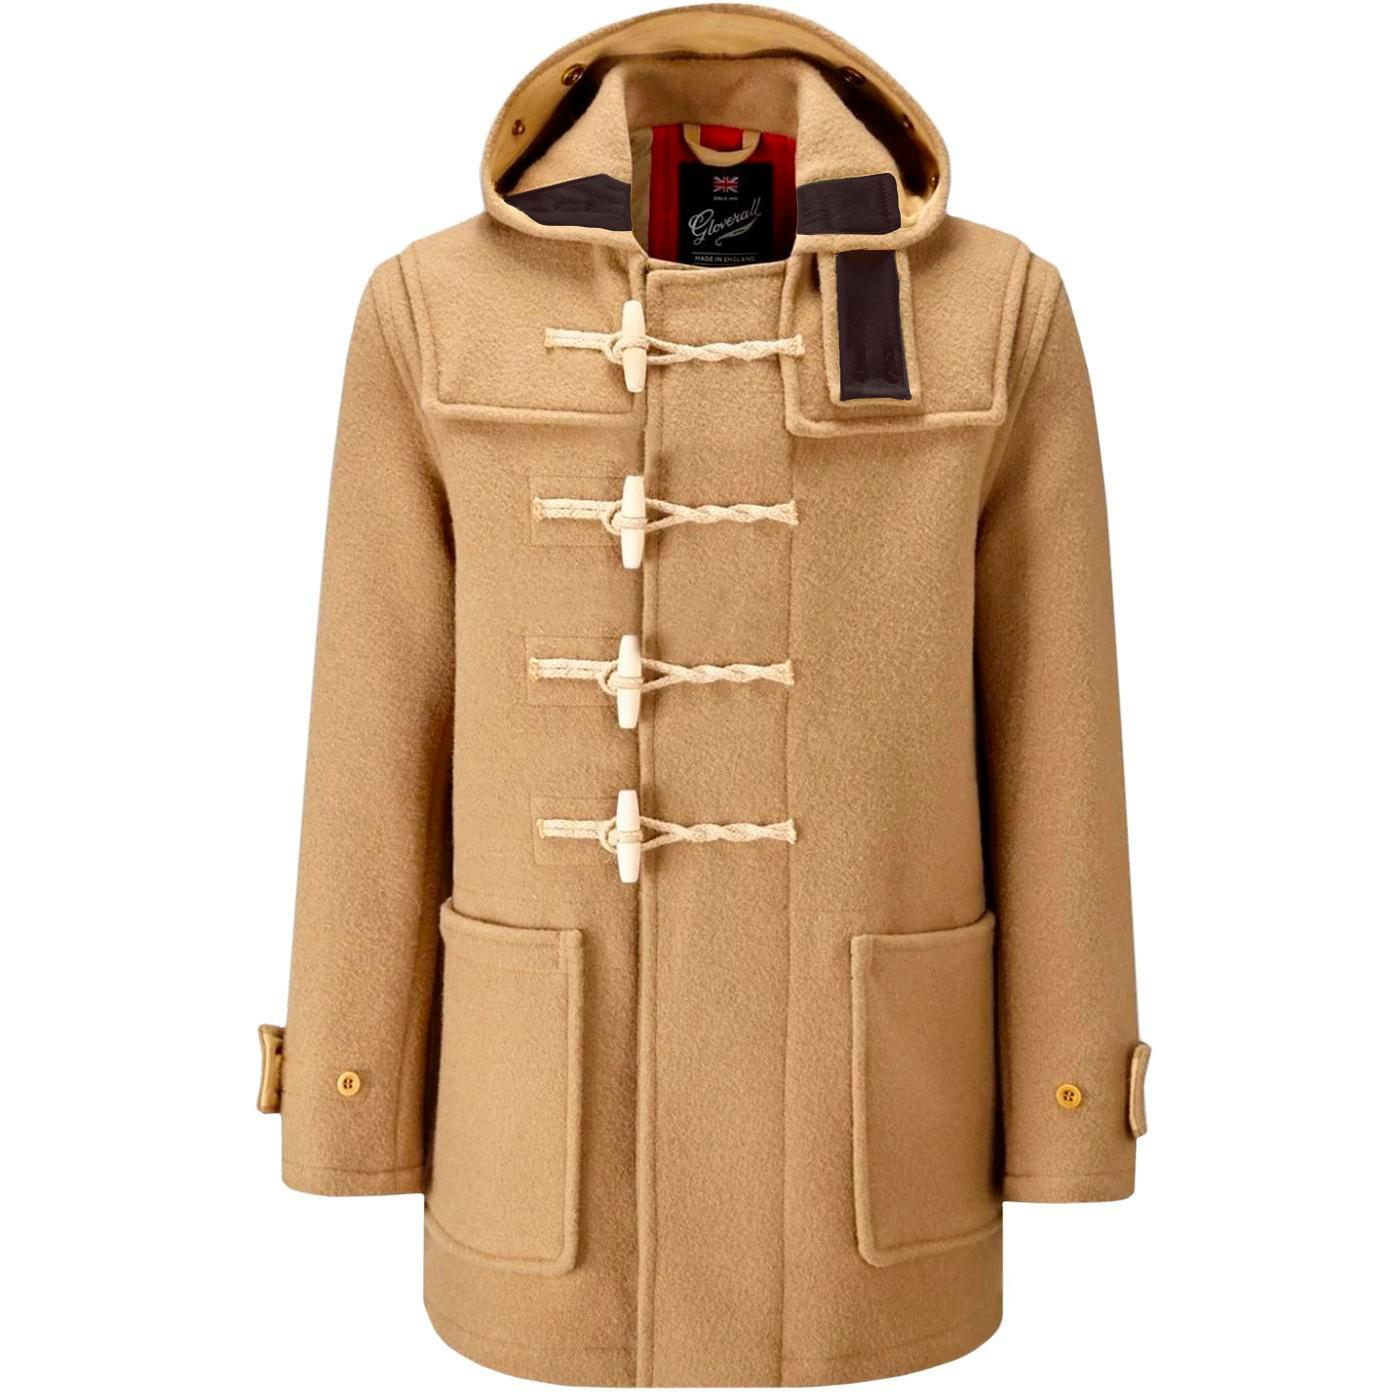 GLOVERALL Union Jack Mid Monty Duffle Coat (Camel)